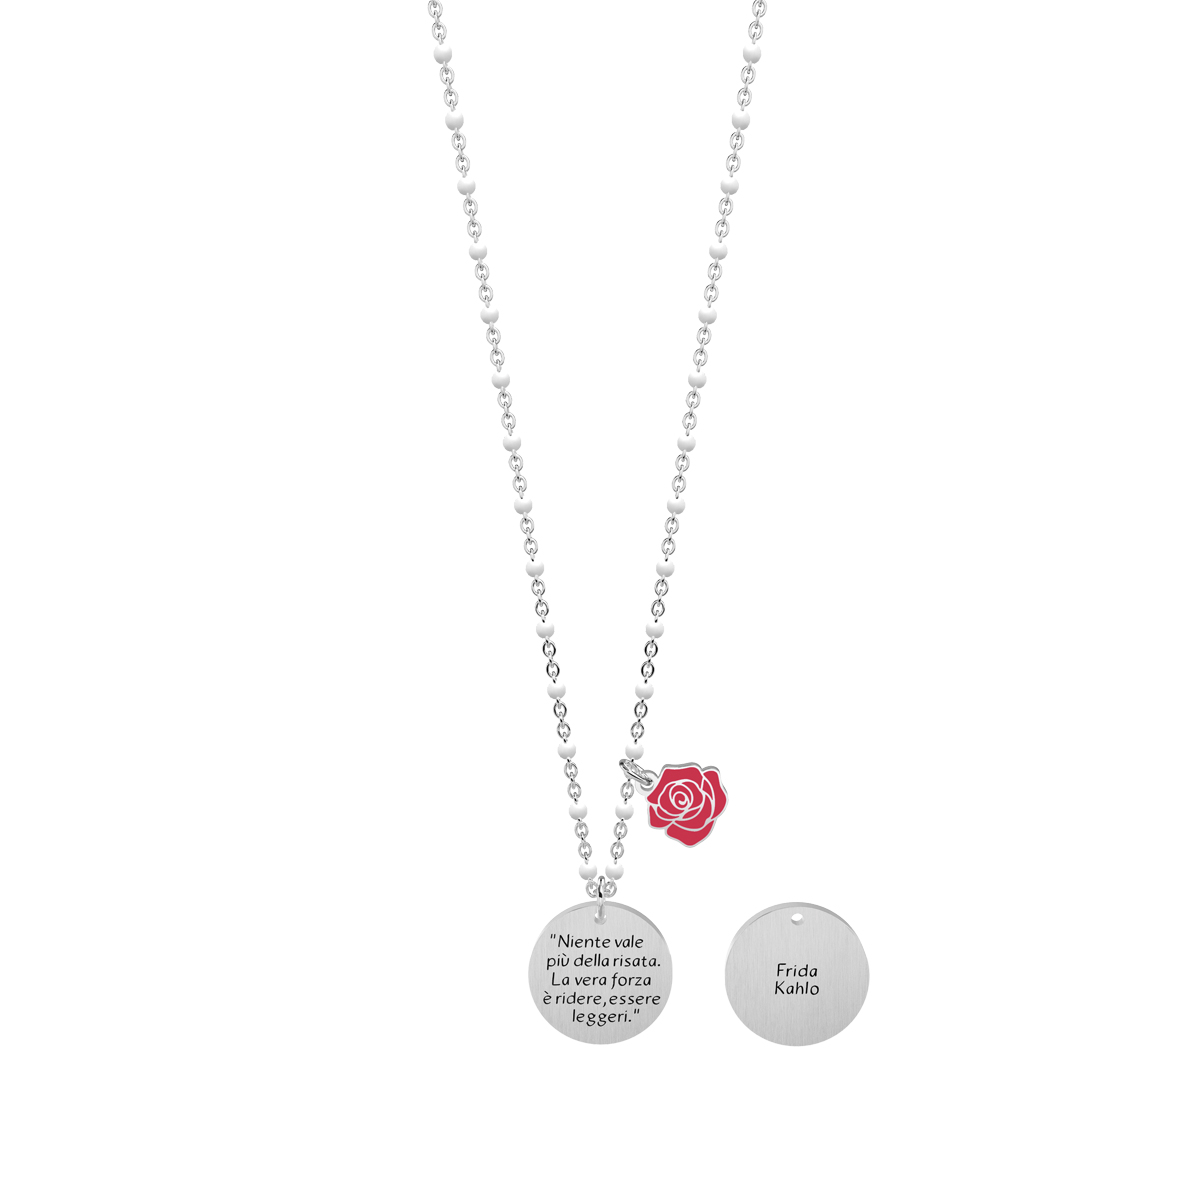 "Collana Kidult 751167 new collection Frida Kahlo ""Niente vale piu..."""